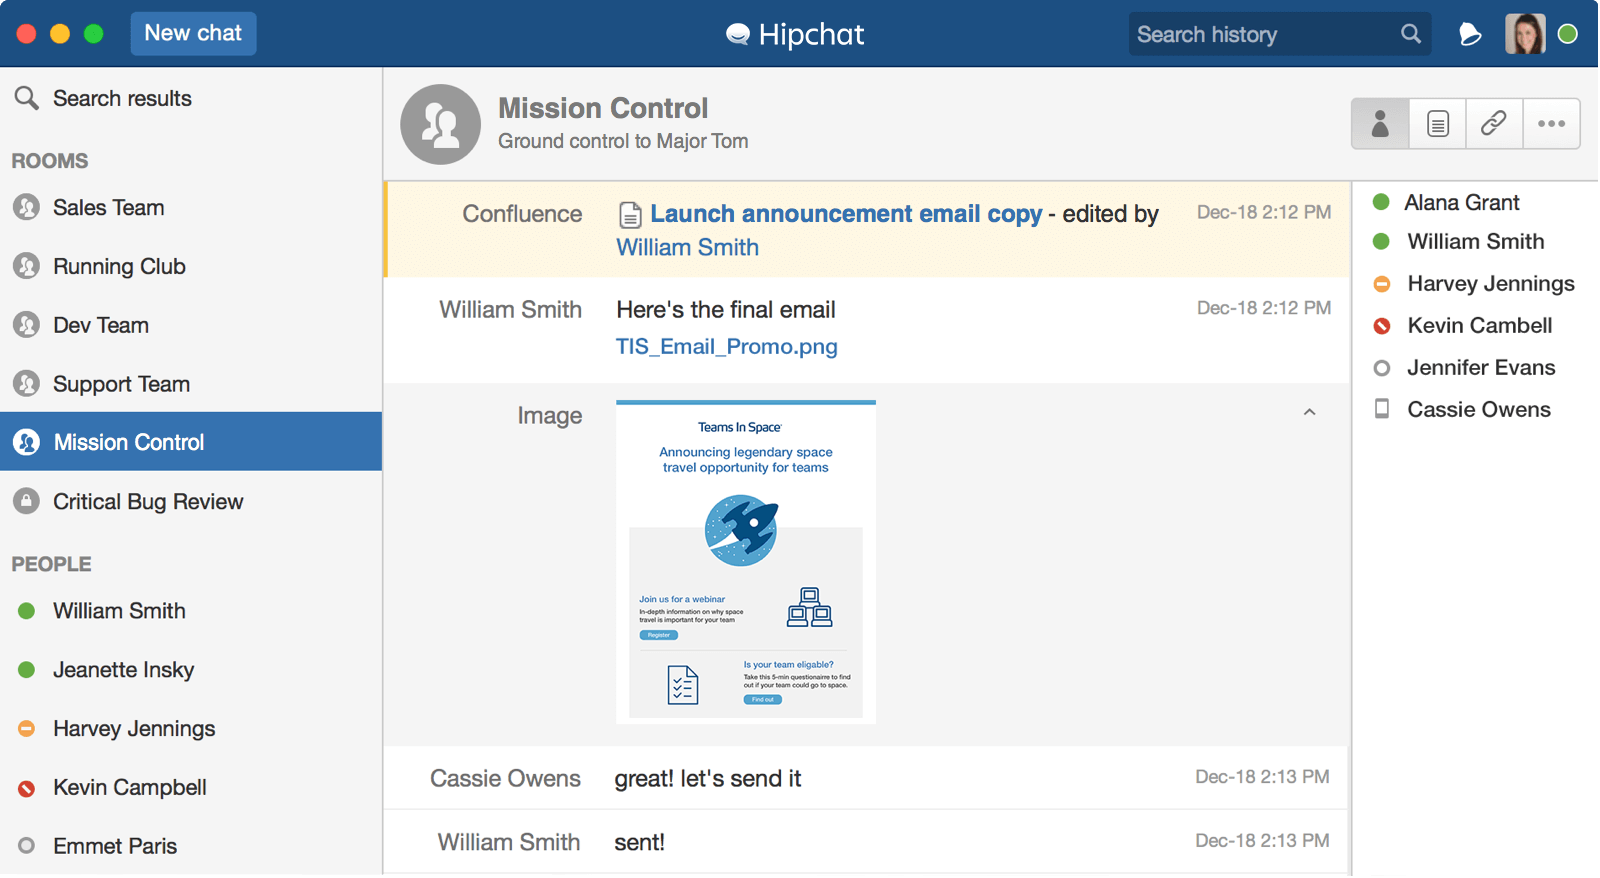 Captura de tela do Hipchat